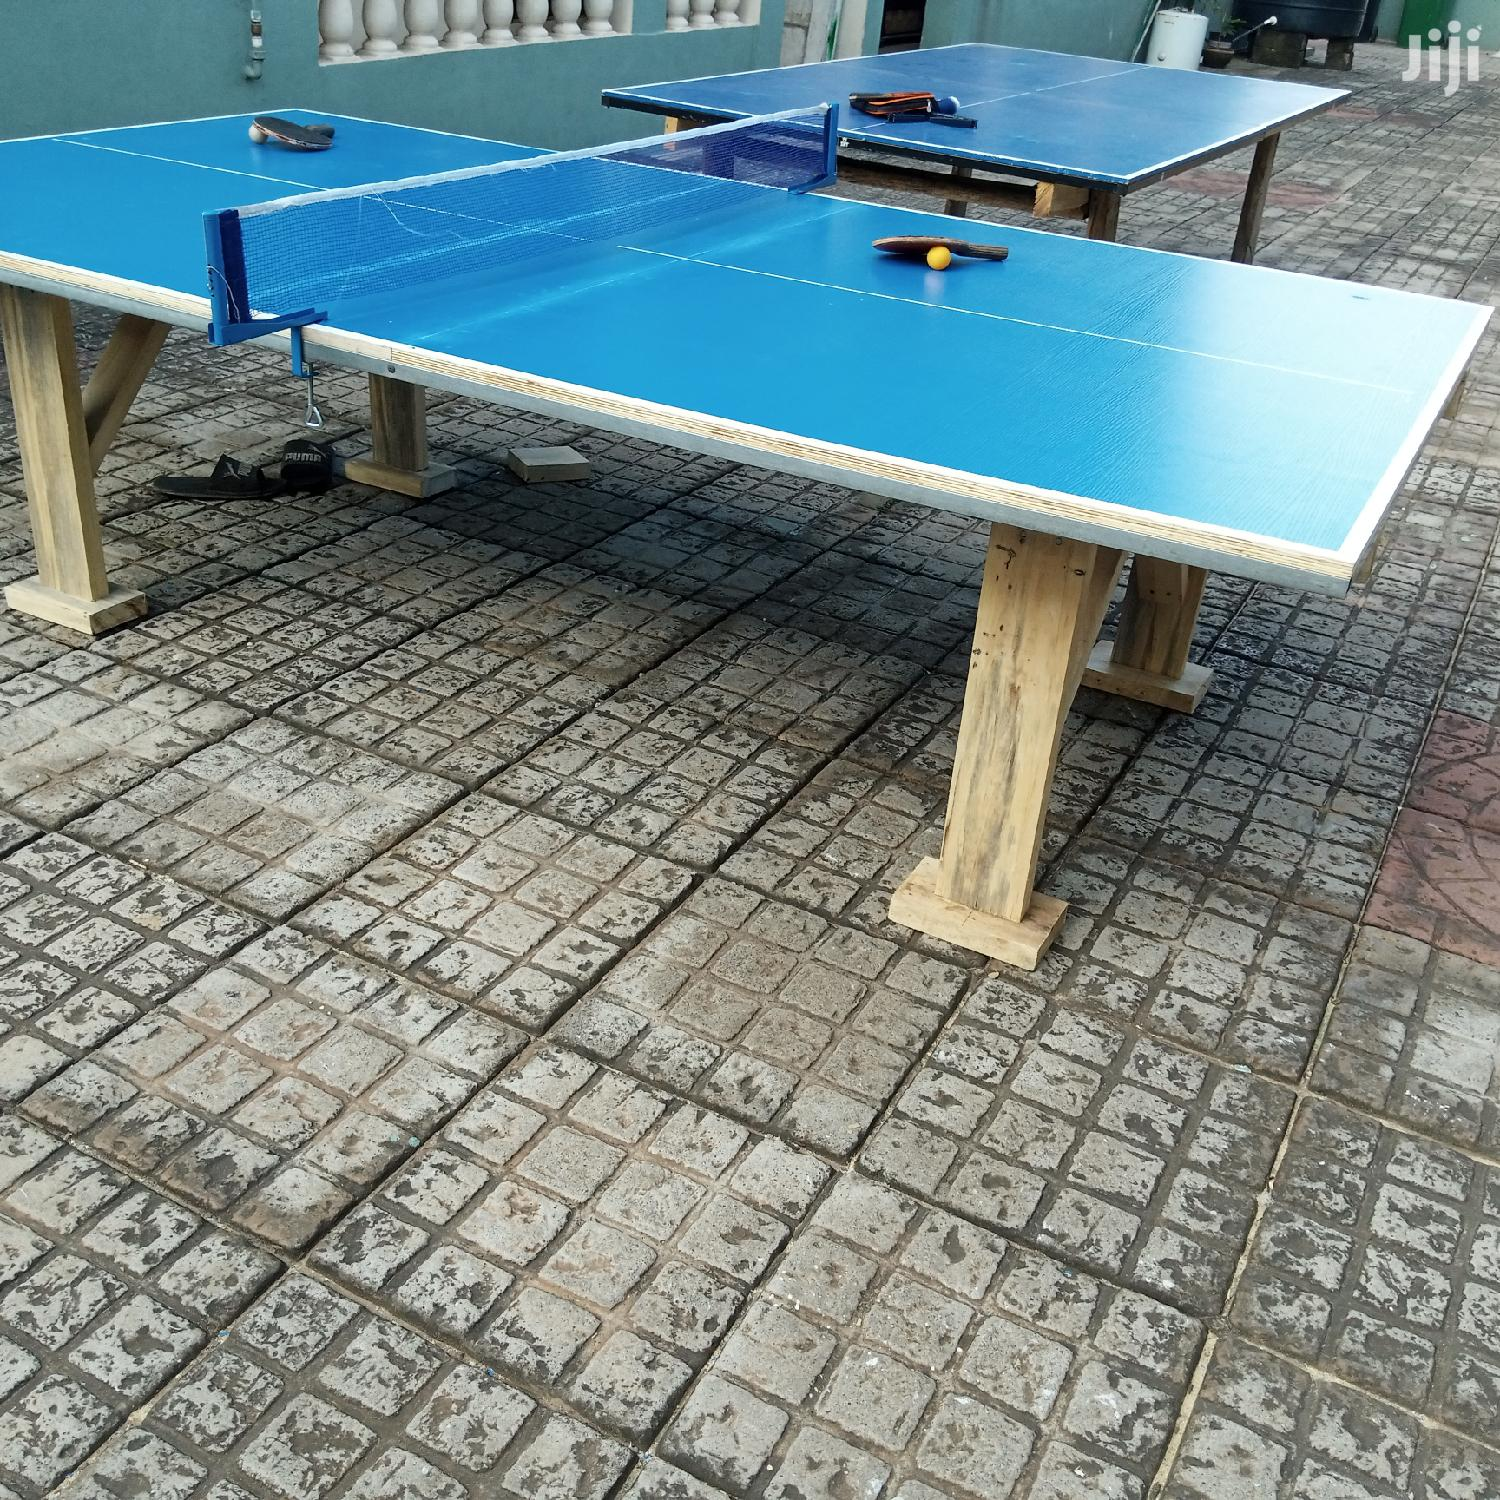 Brand New Table Tennis Boards And Basketball Stands | Sports Equipment for sale in Achimota, Greater Accra, Ghana